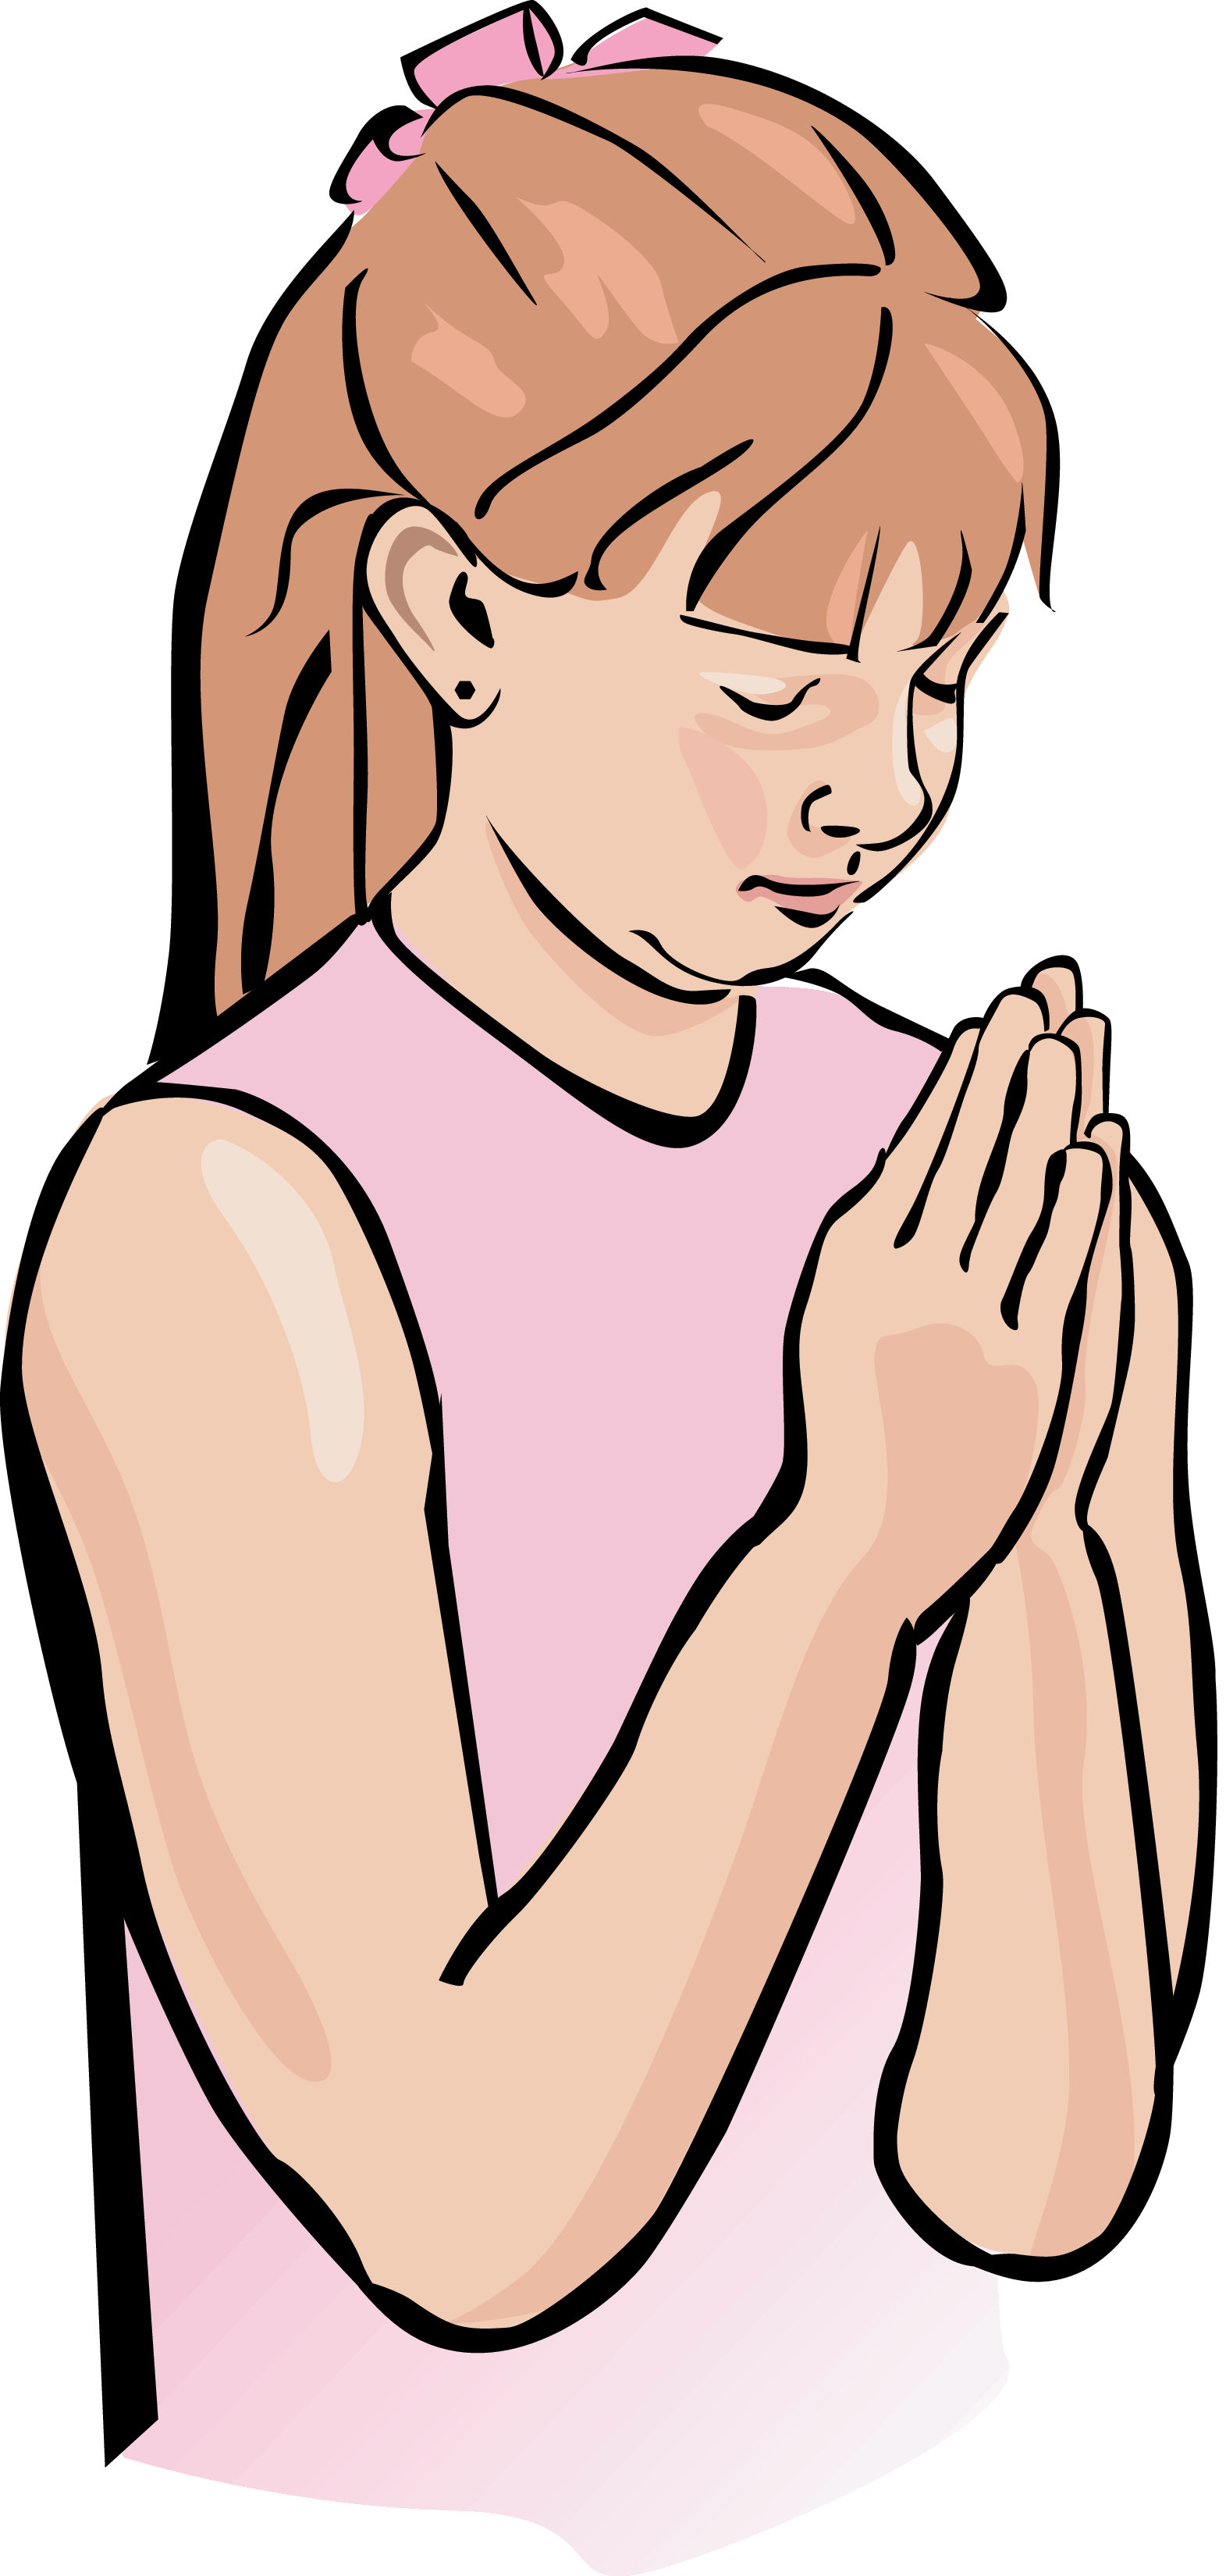 Children pray to god clipart.